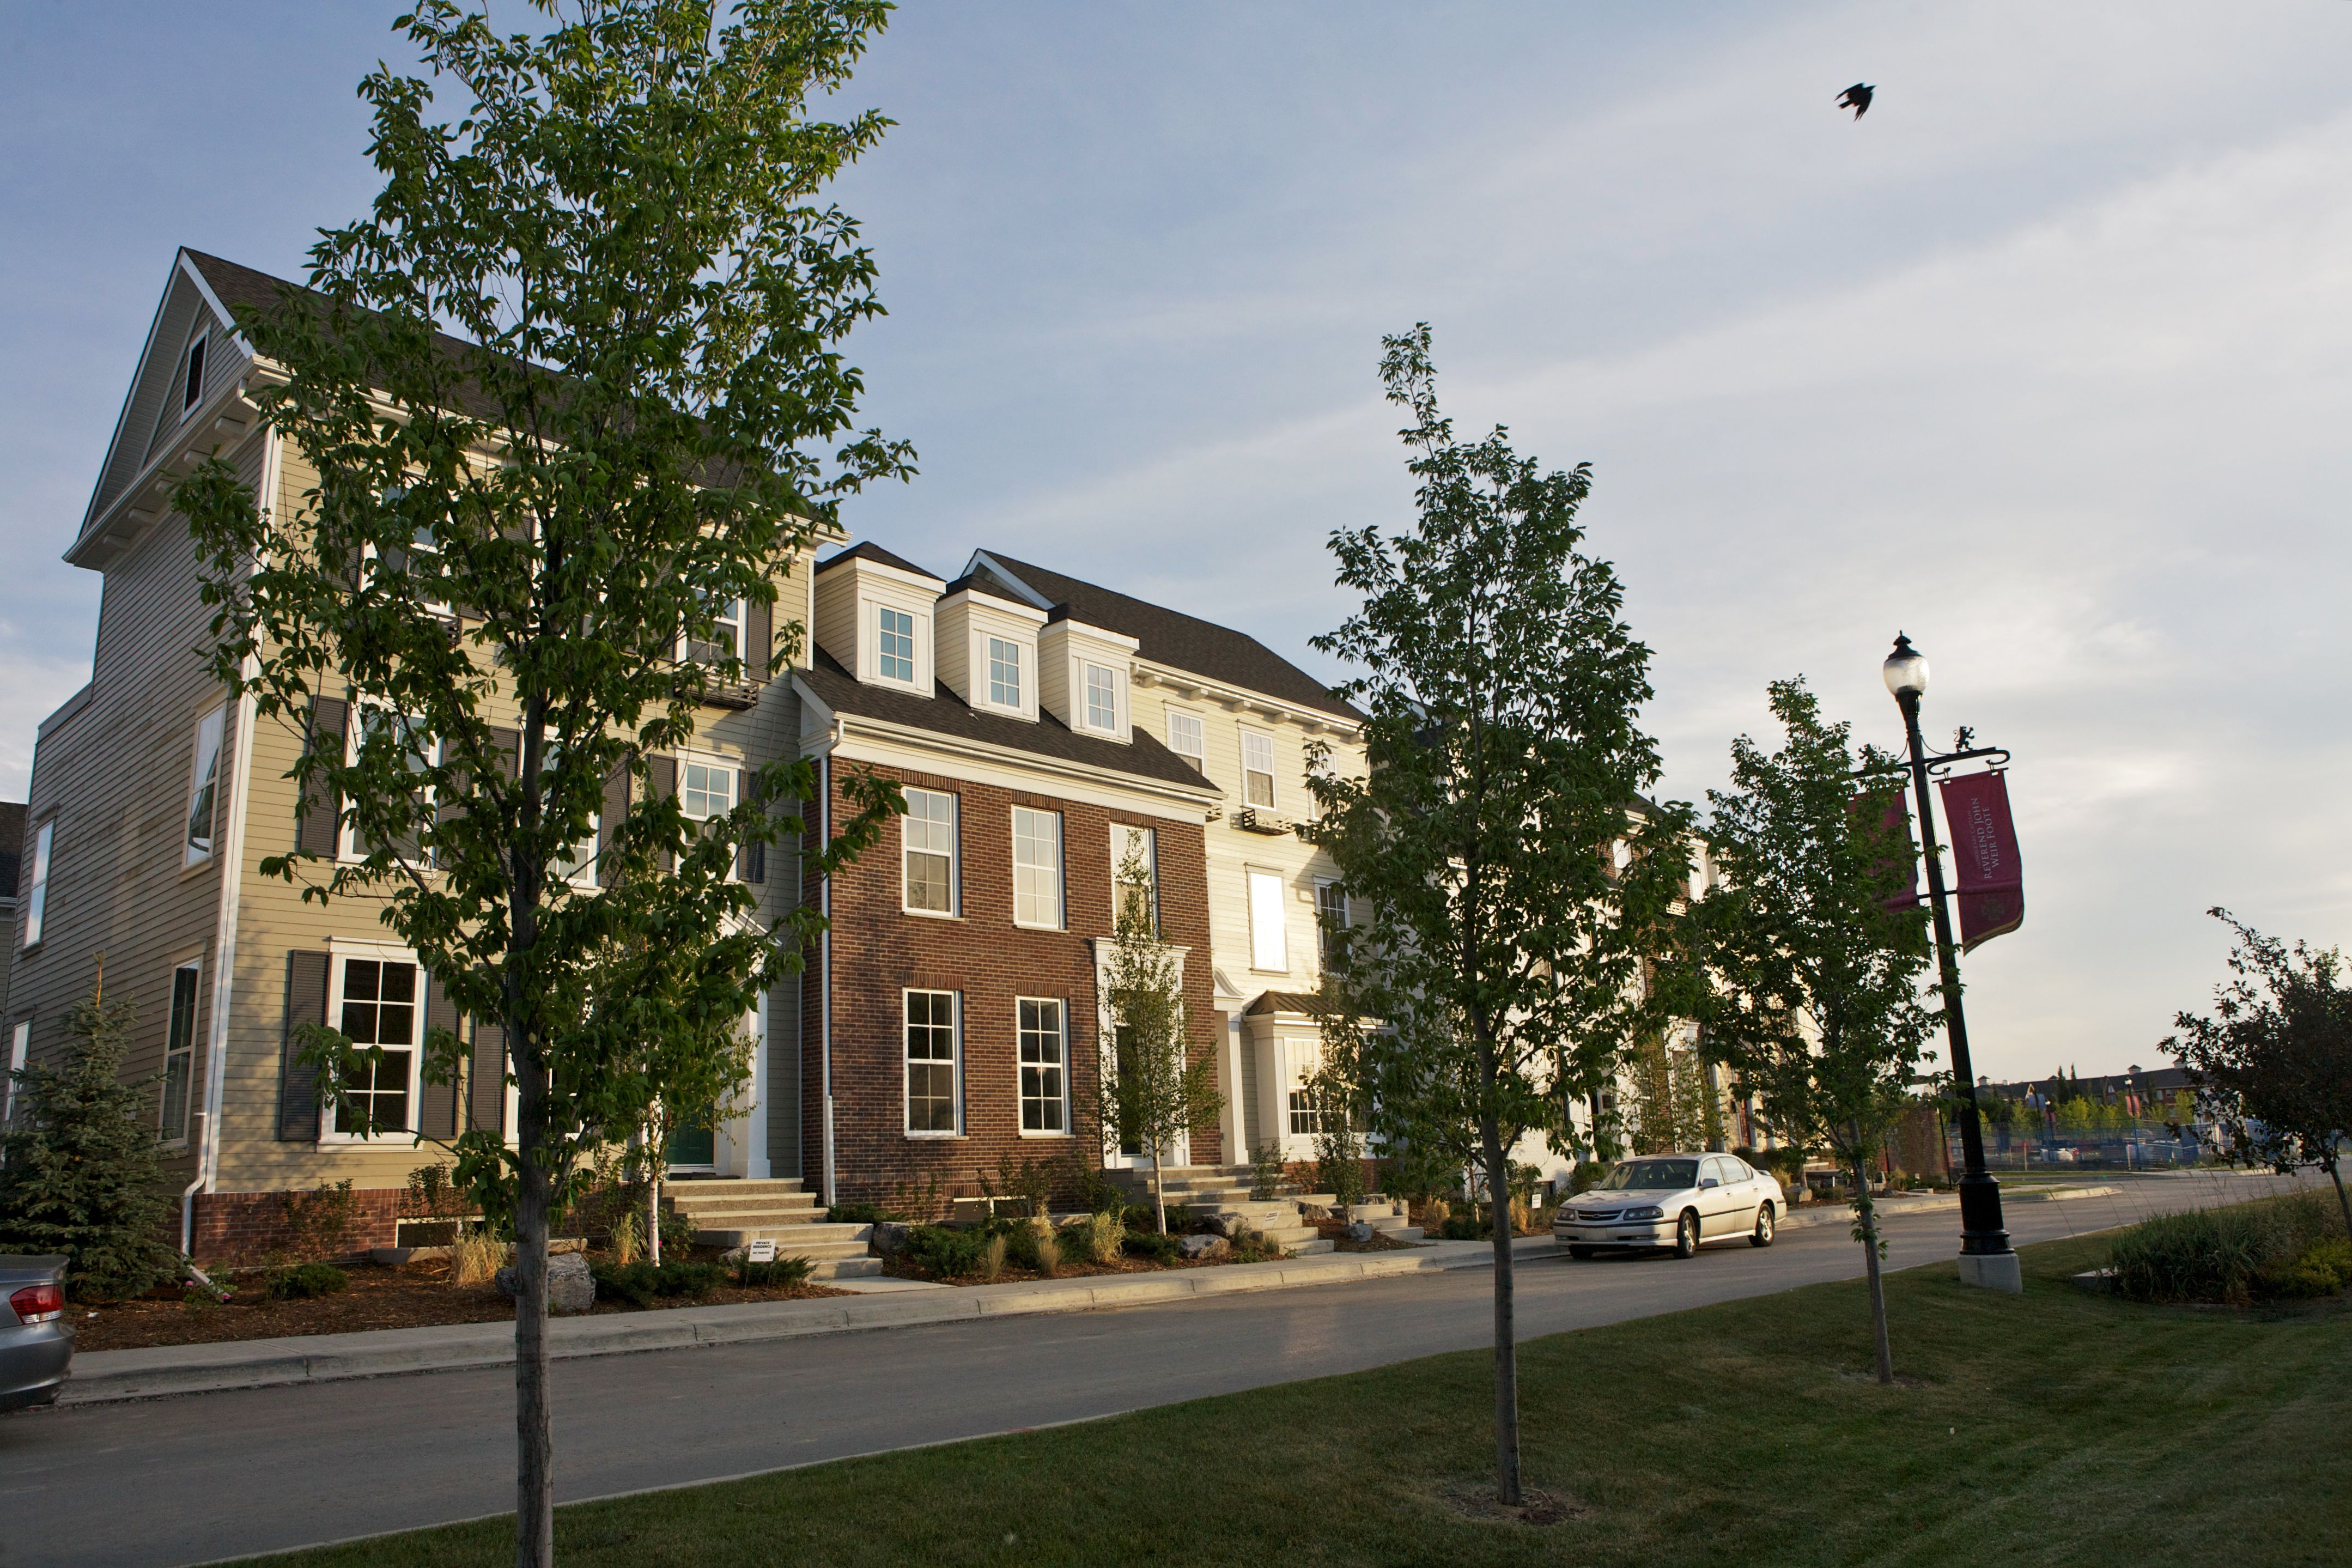 Colonial Homes With Dormer Windows Custom Window Boxes James Hardie Siding And Brick Victoria Cross Townhomes In Curri We Create Great Exteriors